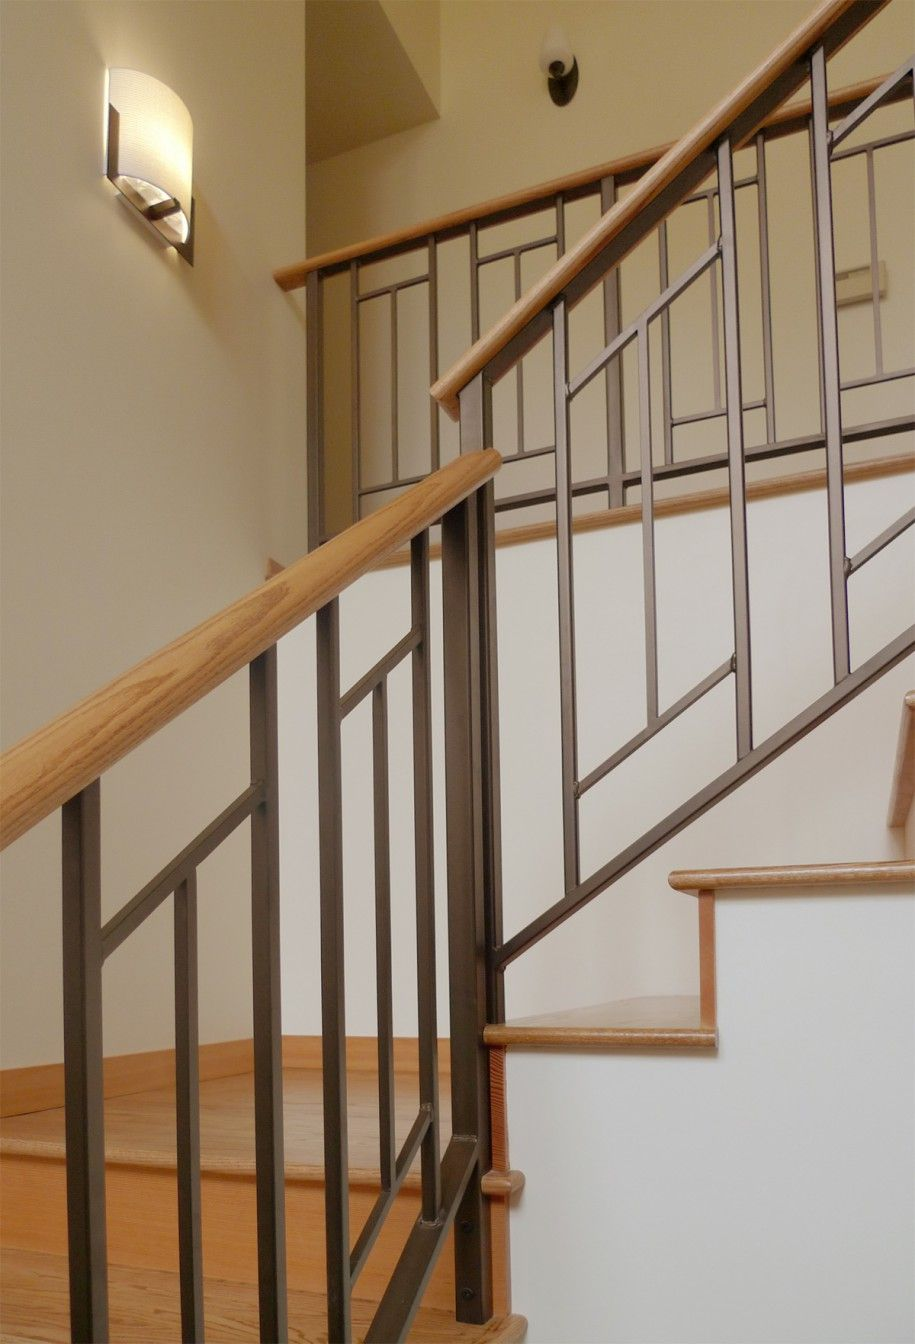 Furniture, Simple And Sleek Contemporary Staircase Railings With Nice  Designs From Metal And Wood Materials